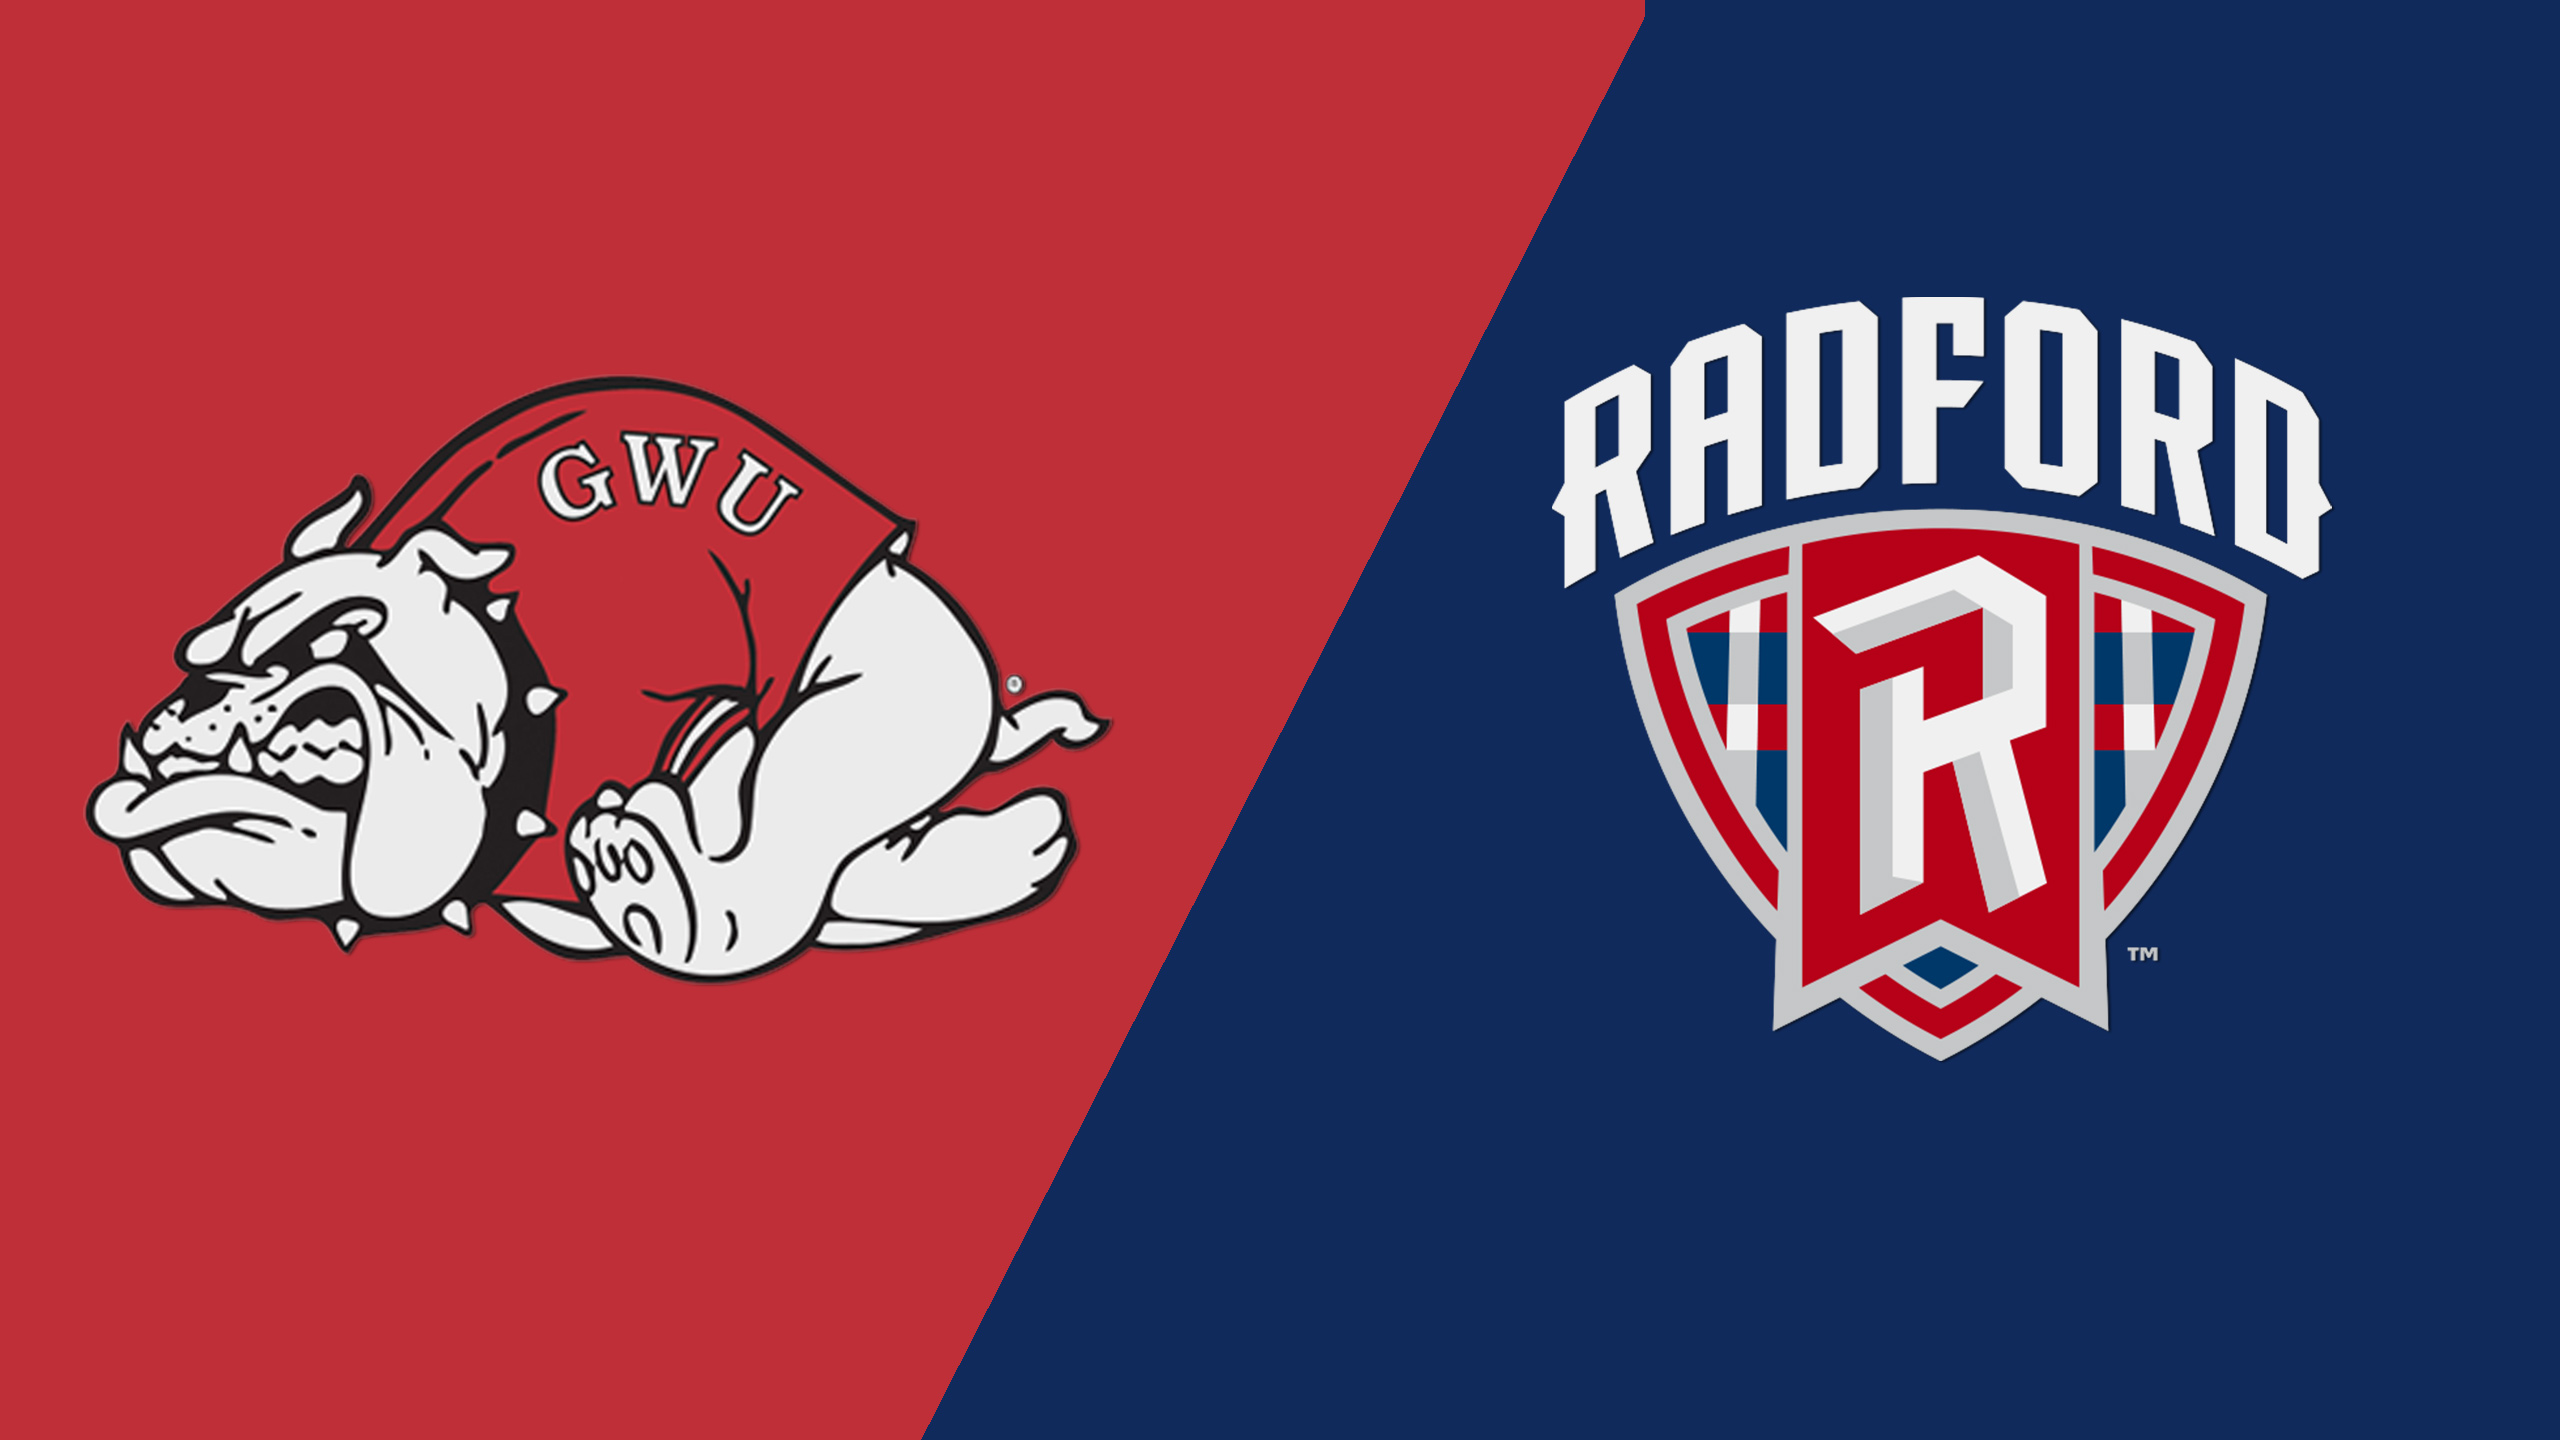 Gardner-Webb vs. Radford (M Basketball)